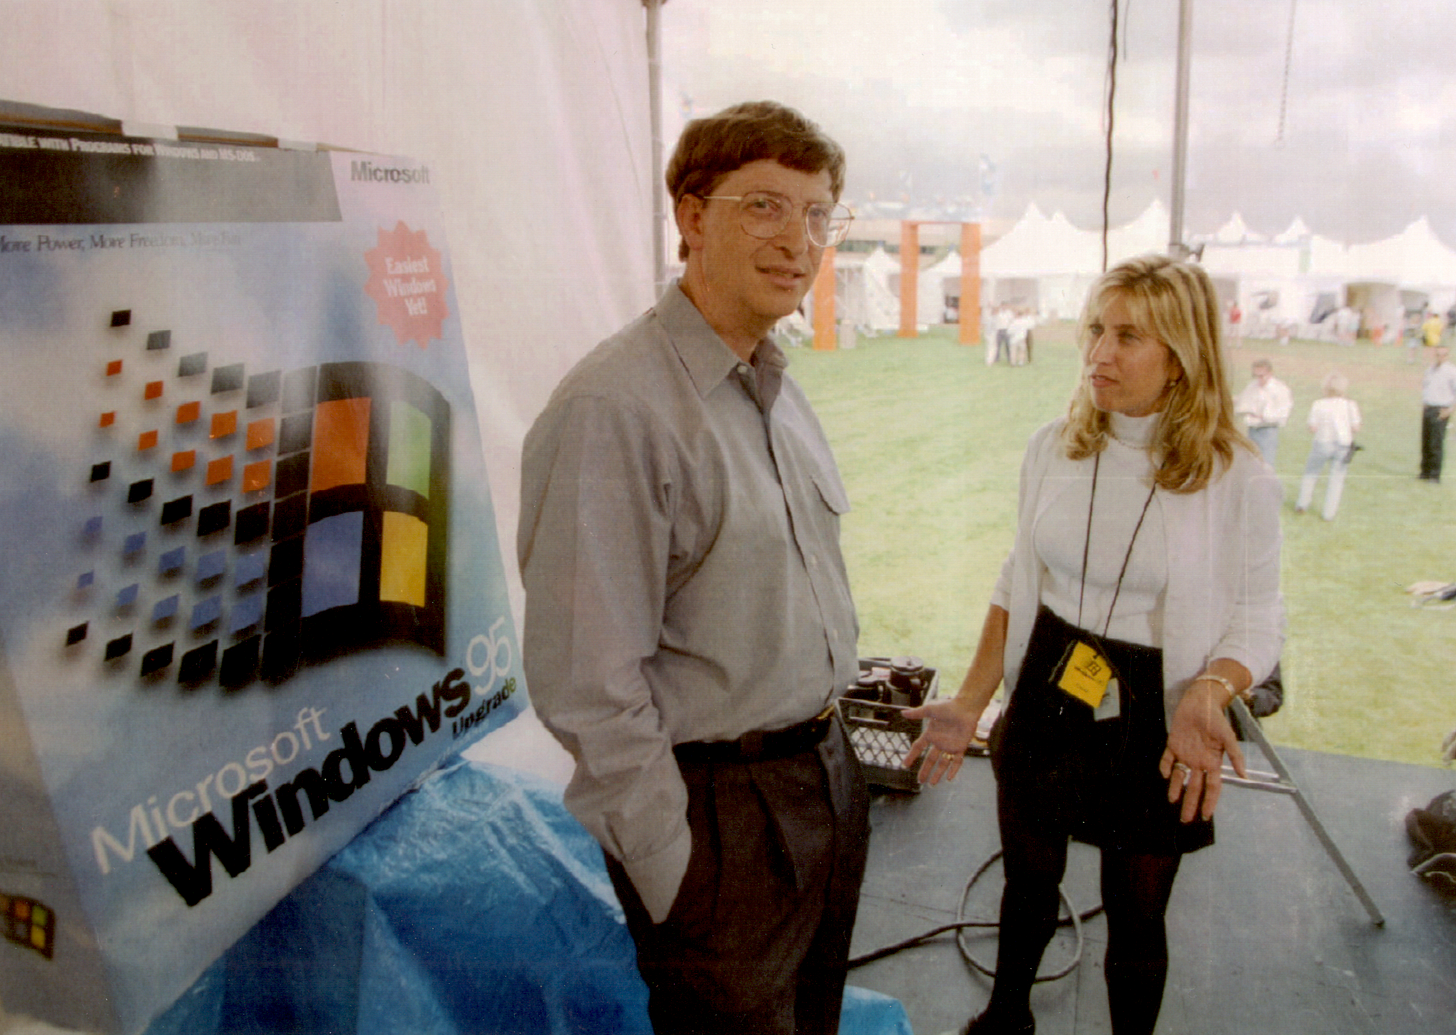 Photo of bill gates behind the scenes preparing for the Windows 95 launch the day before.